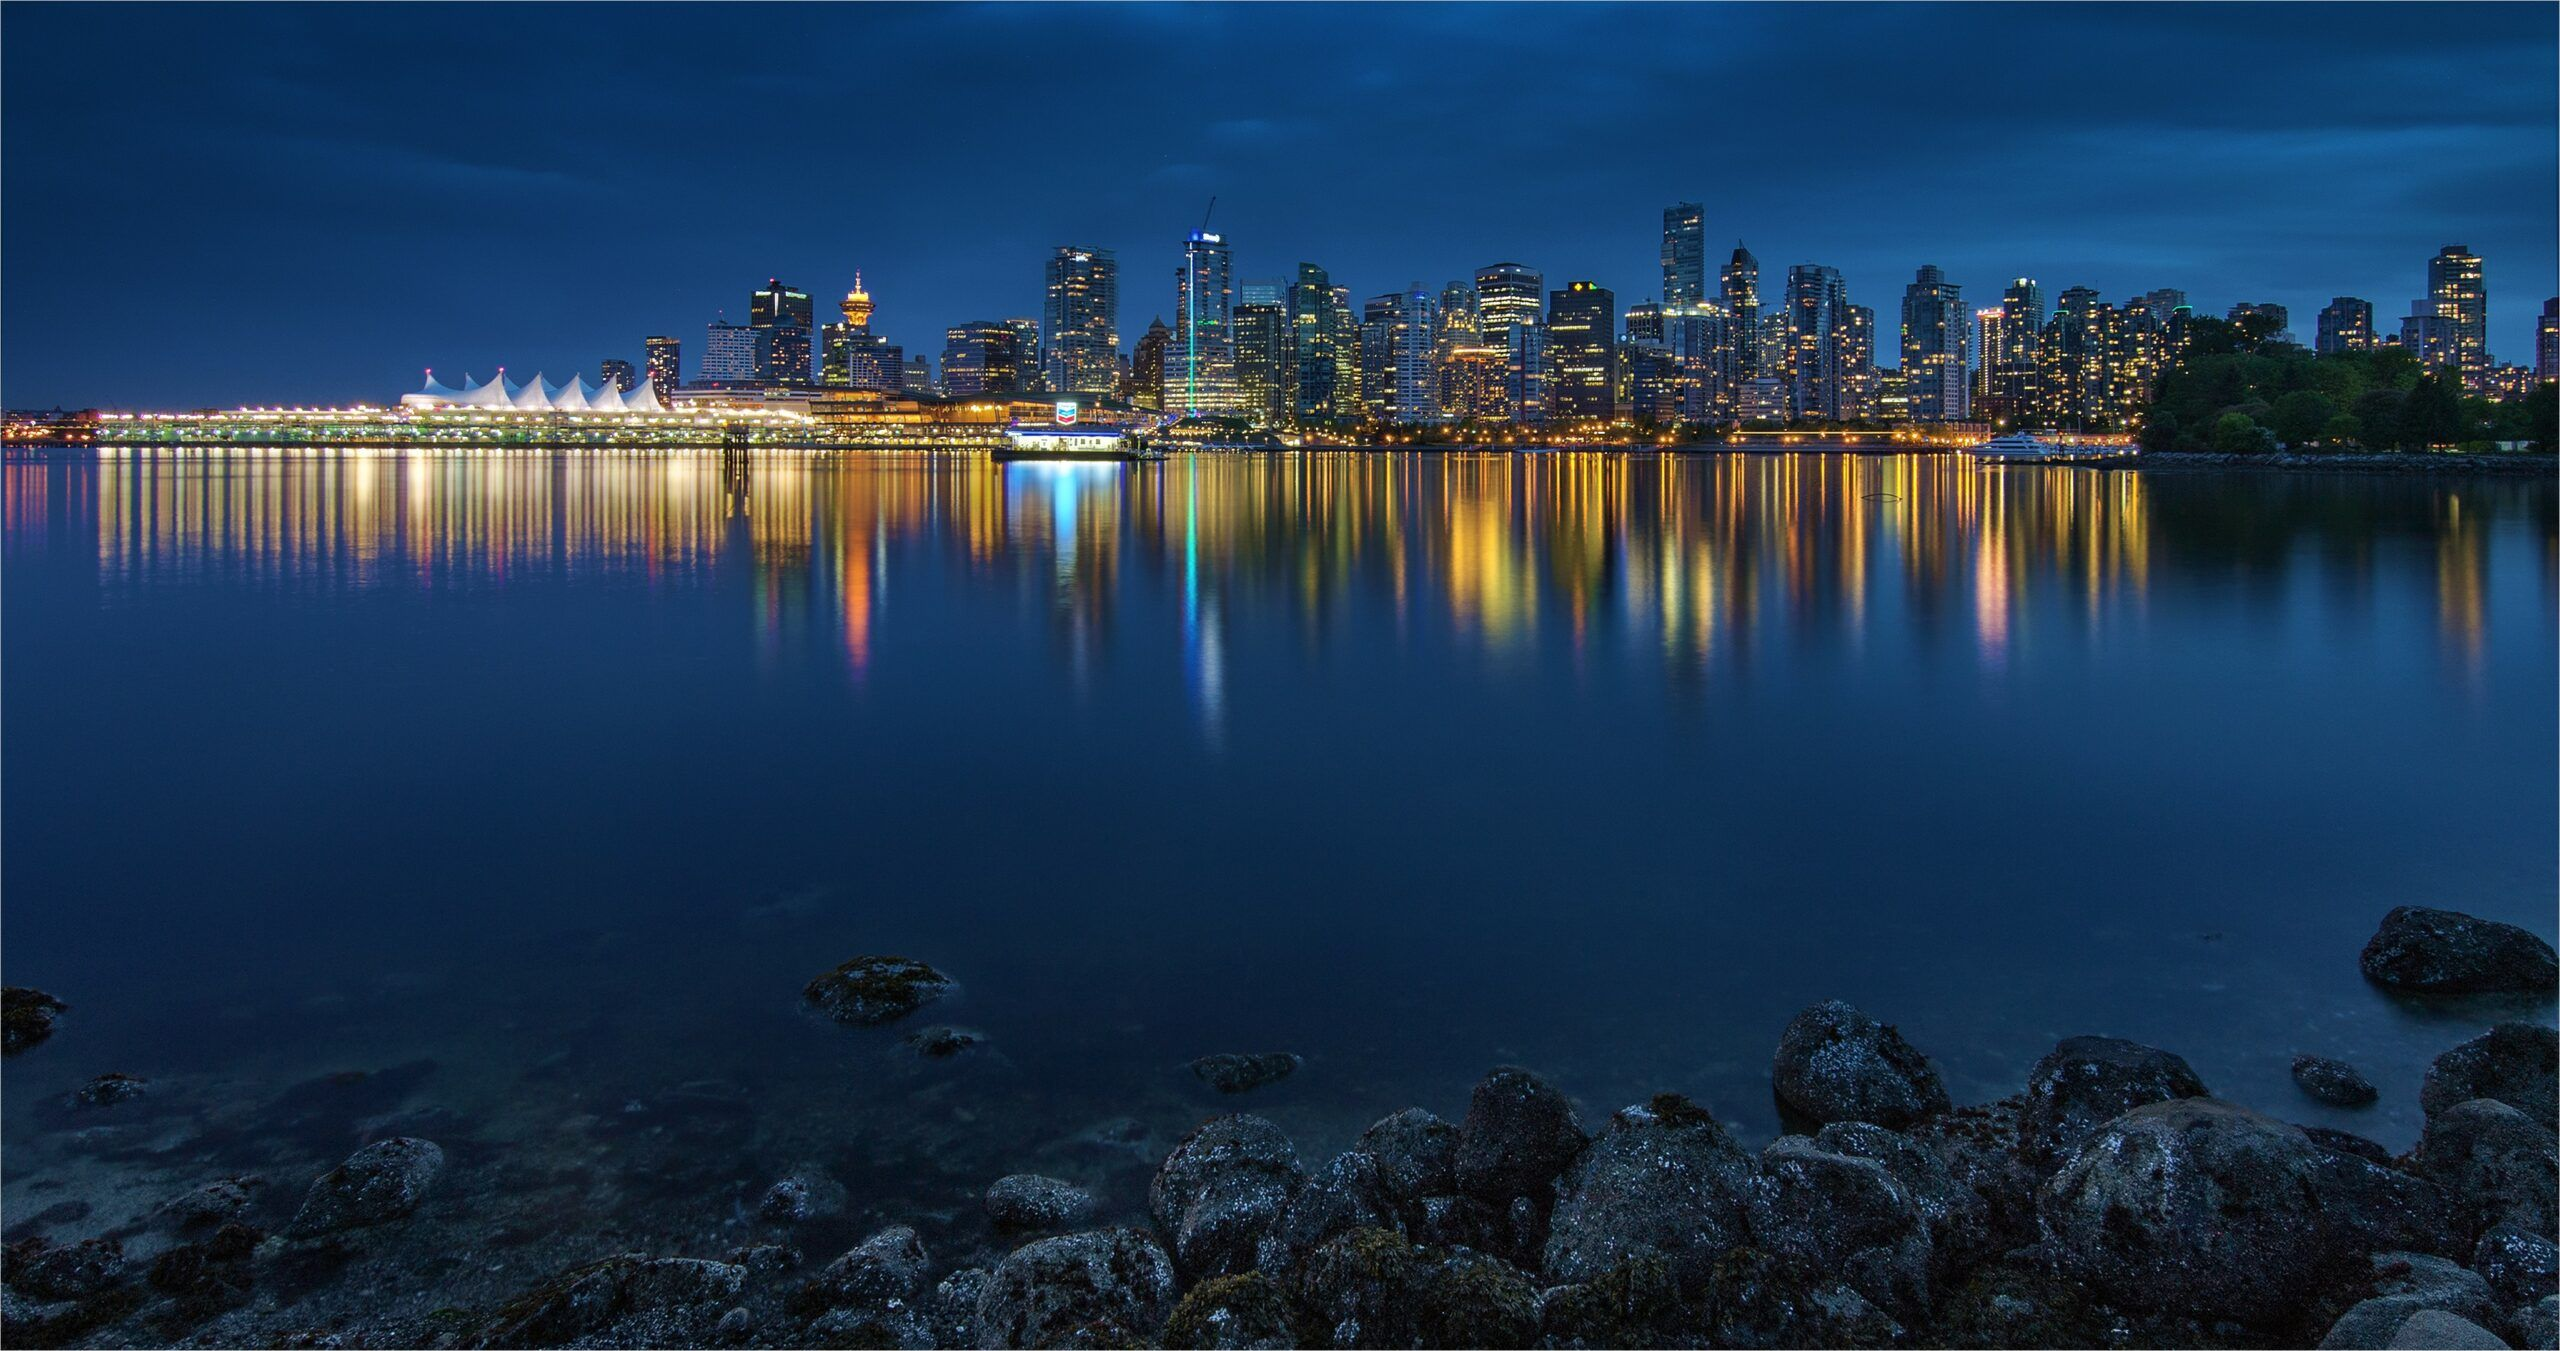 2160 X 1440 4k Wallpaper In 2020 City Lights At Night Floating City Wallpaper Free Download